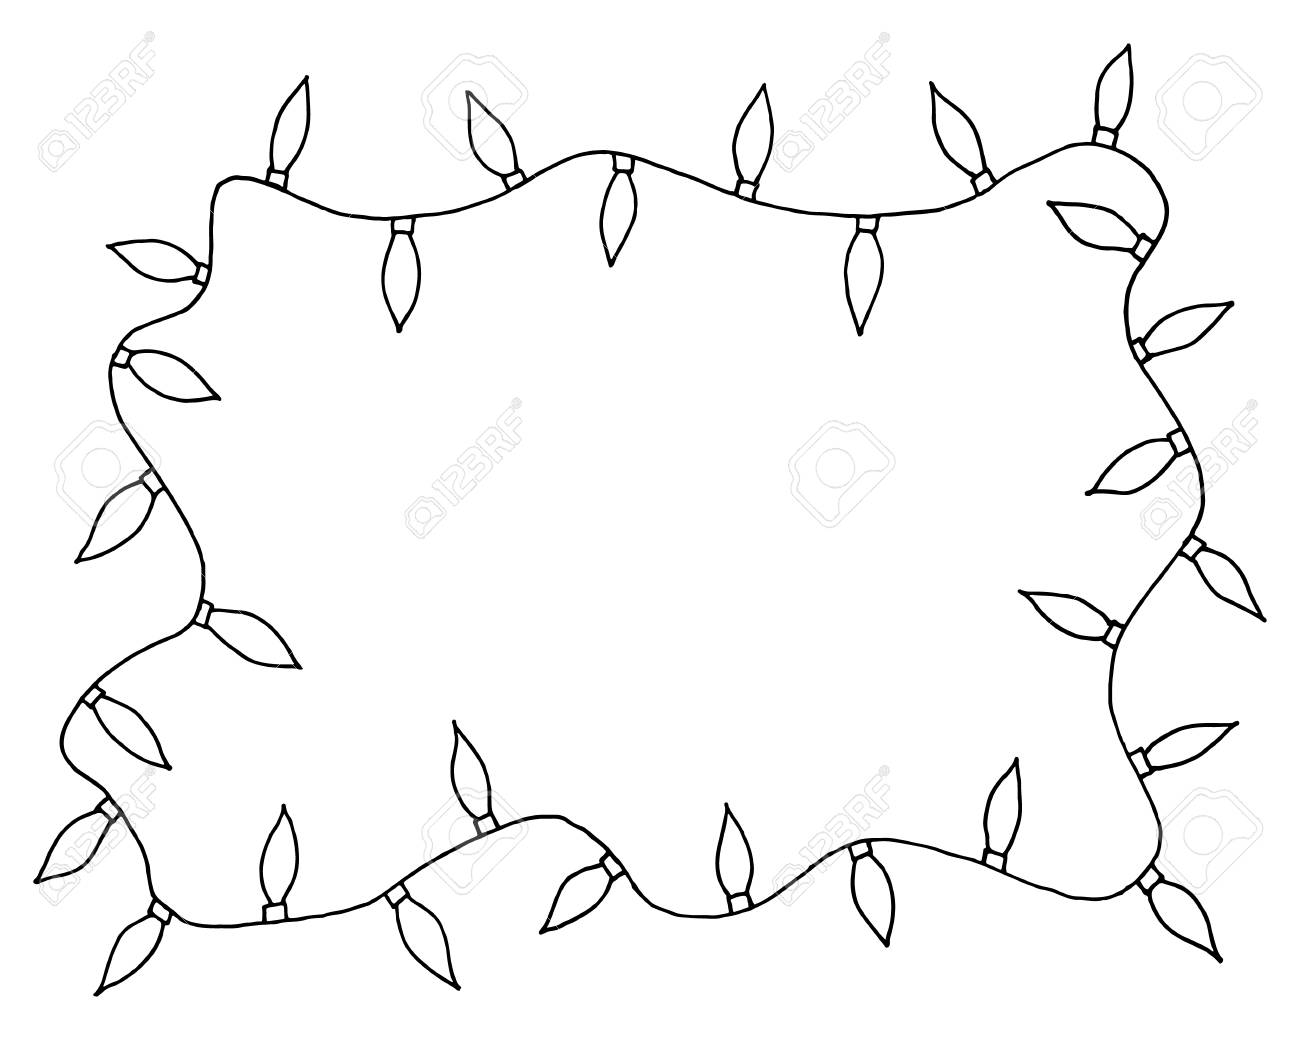 sketchy frames illustration hand drawn festive christmas lights stock photo picture and royalty free image image 93235972 sketchy frames illustration hand drawn festive christmas lights